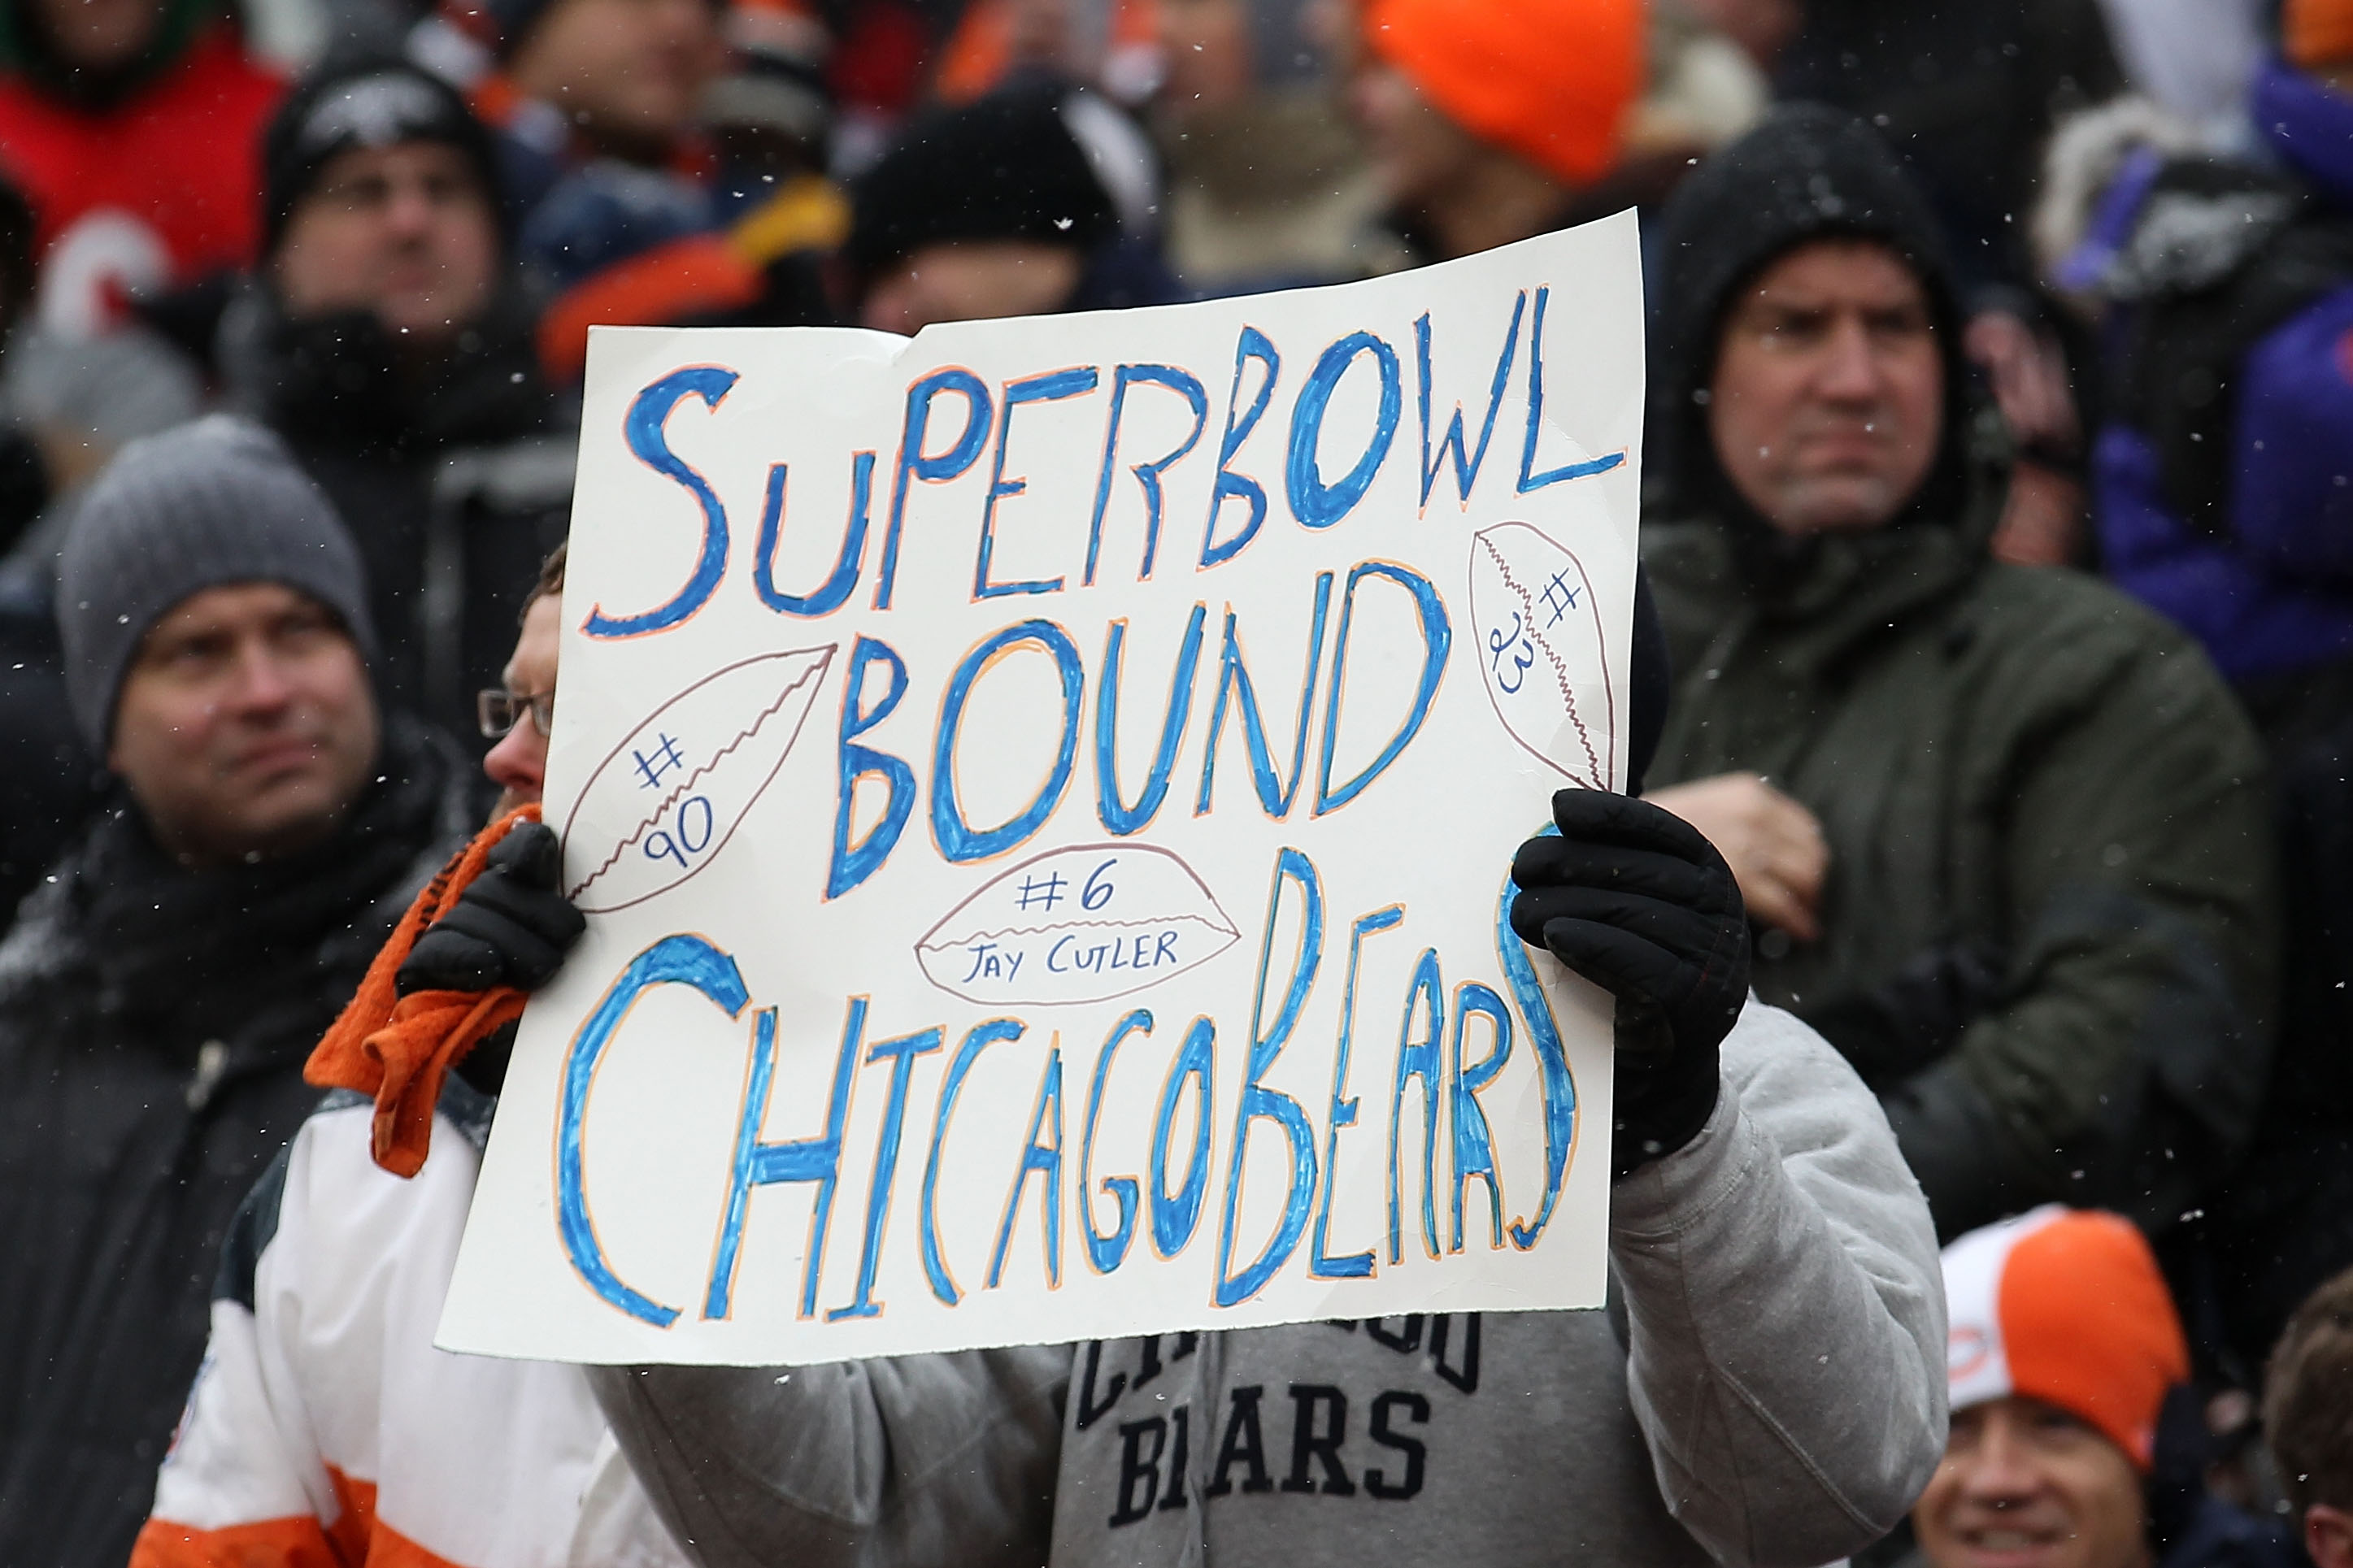 CHICAGO, IL - JANUARY 16:  A Chicago Bears fan holds up a as the Bears take on the Seattle Seahawks in the 2011 NFC divisional playoff game at Soldier Field on January 16, 2011 in Chicago, Illinois.  (Photo by Jonathan Daniel/Getty Images)